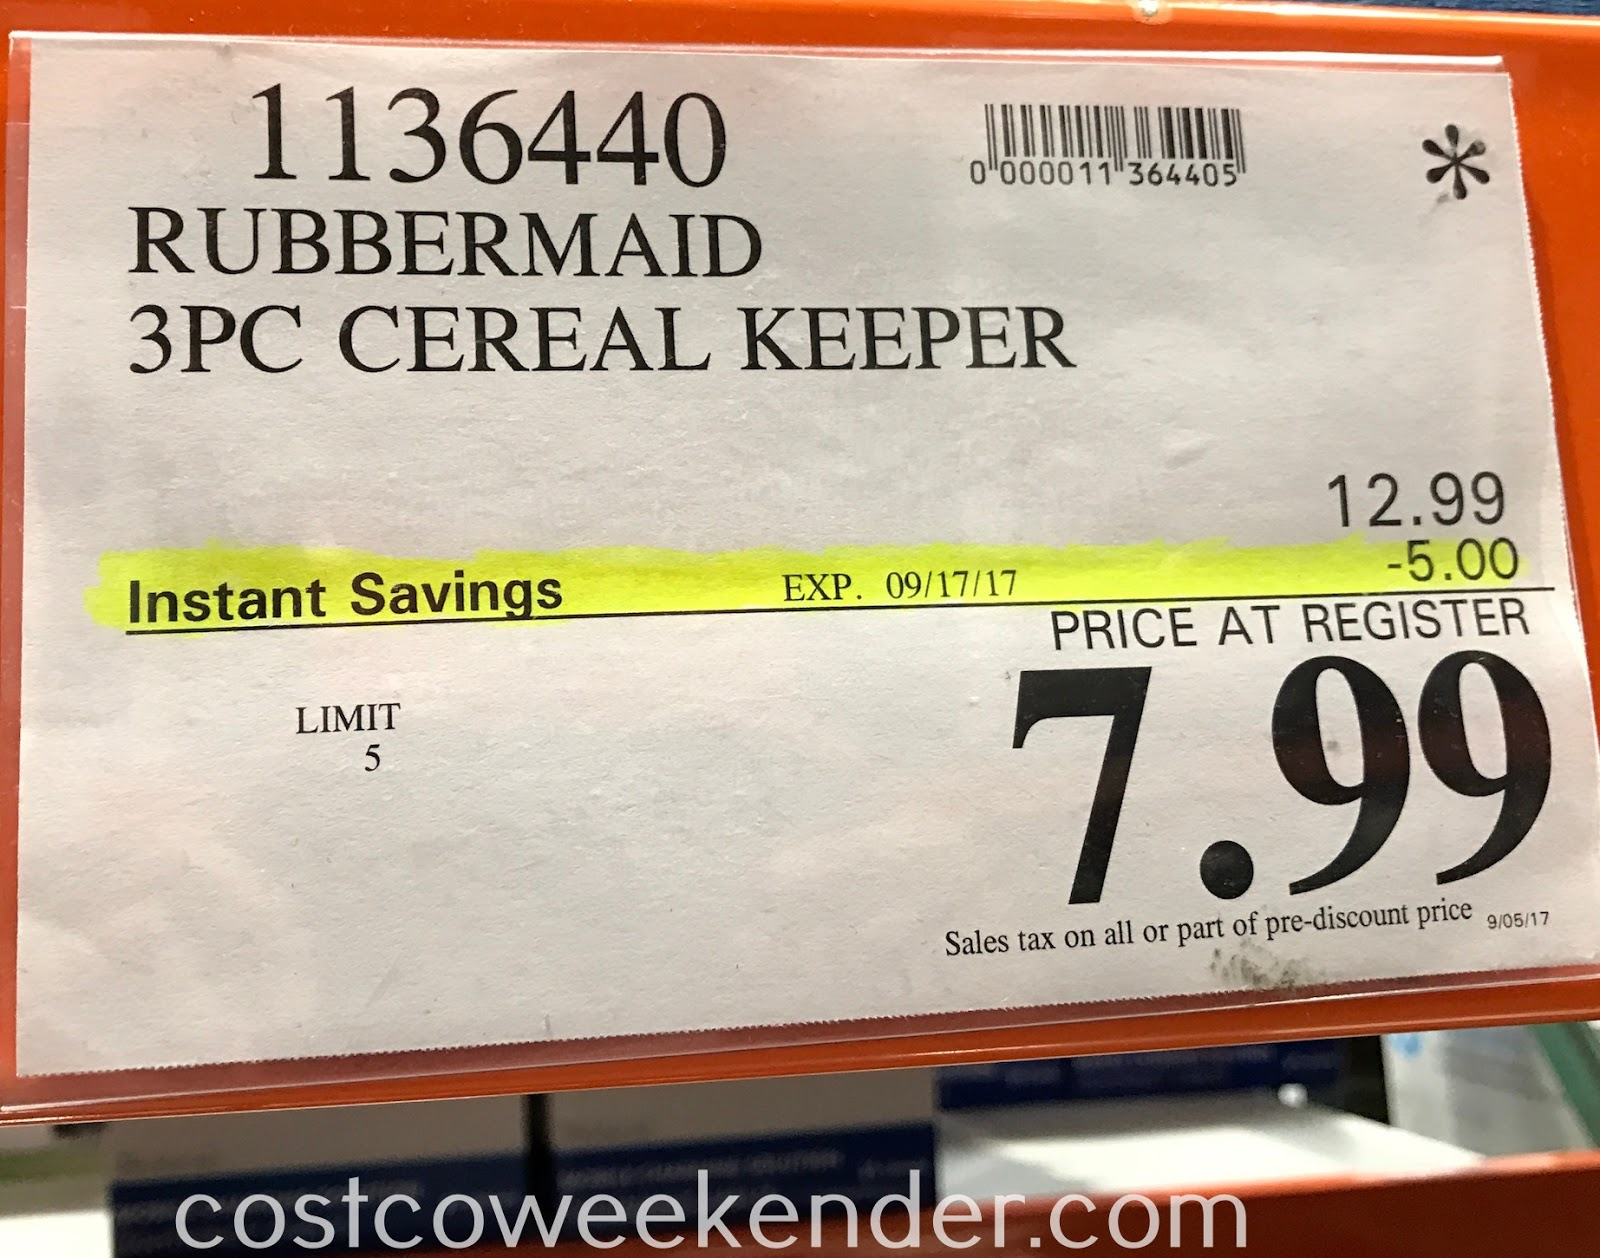 Costco 1136440 - Deal for a 3 pack of Rubbermaid Cereal Keeper at Costco